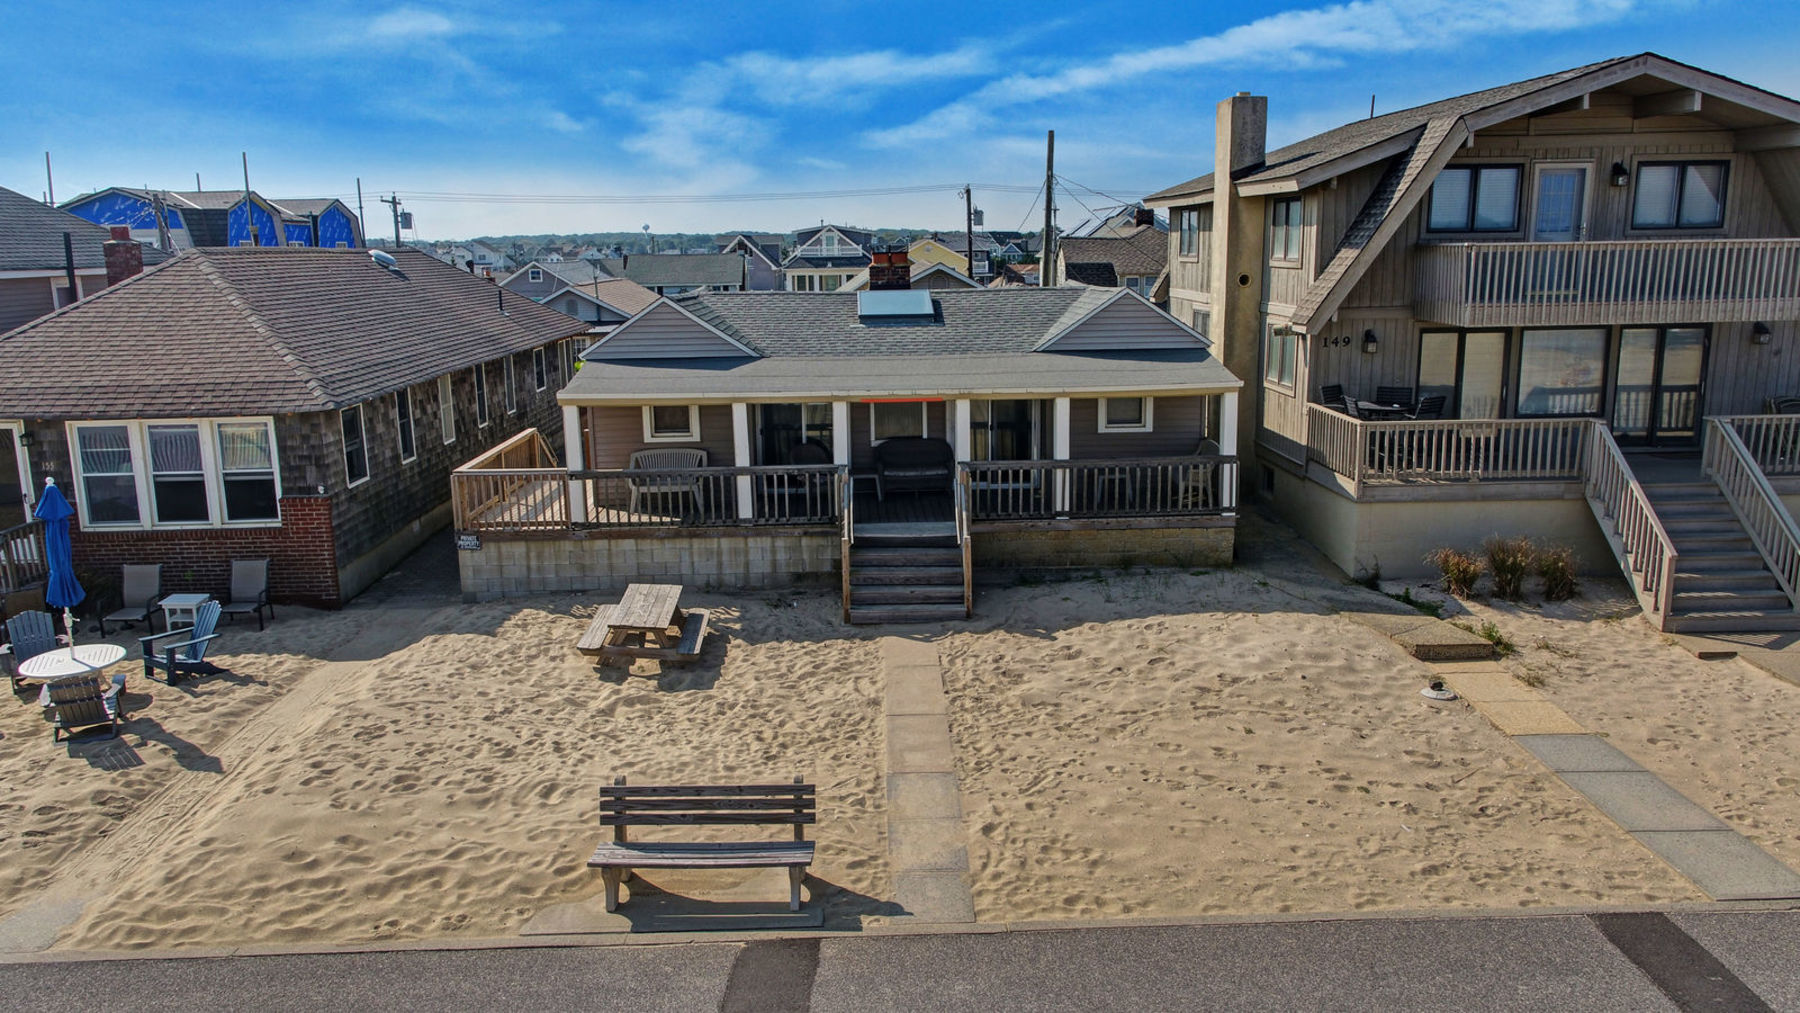 Single Family Home for Sale at Special Lot Size 153 Beachfront, Manasquan, New Jersey 08736 United States